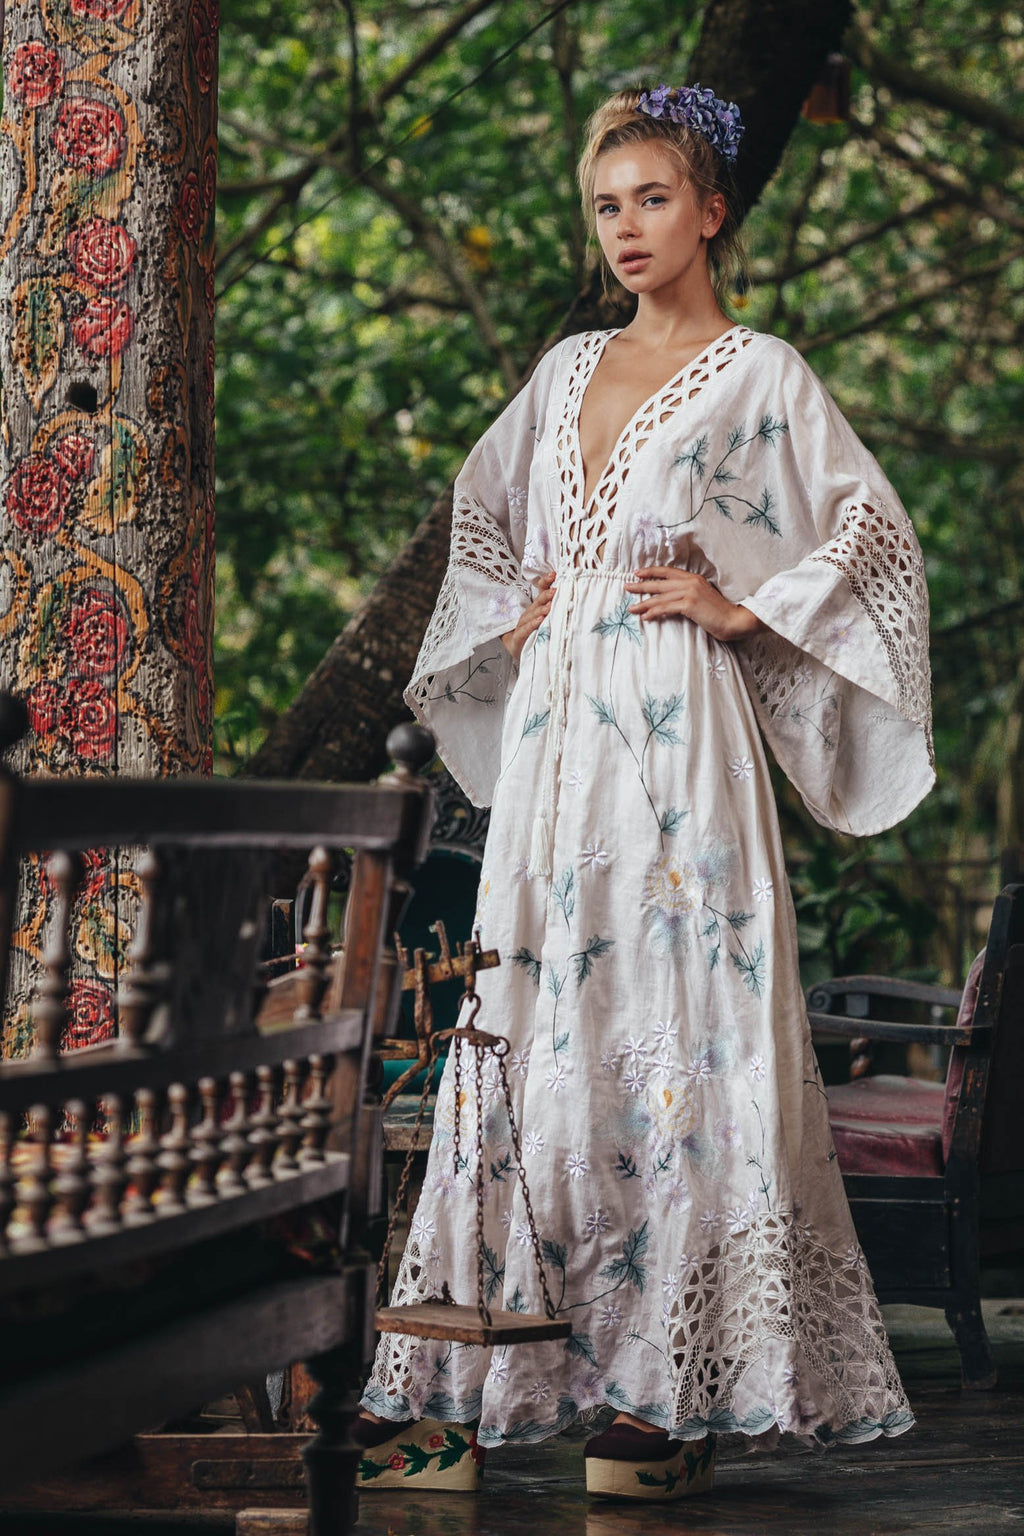 Fillyboo - I AM LOLA - Embroidered duster & maxi dress - Beige